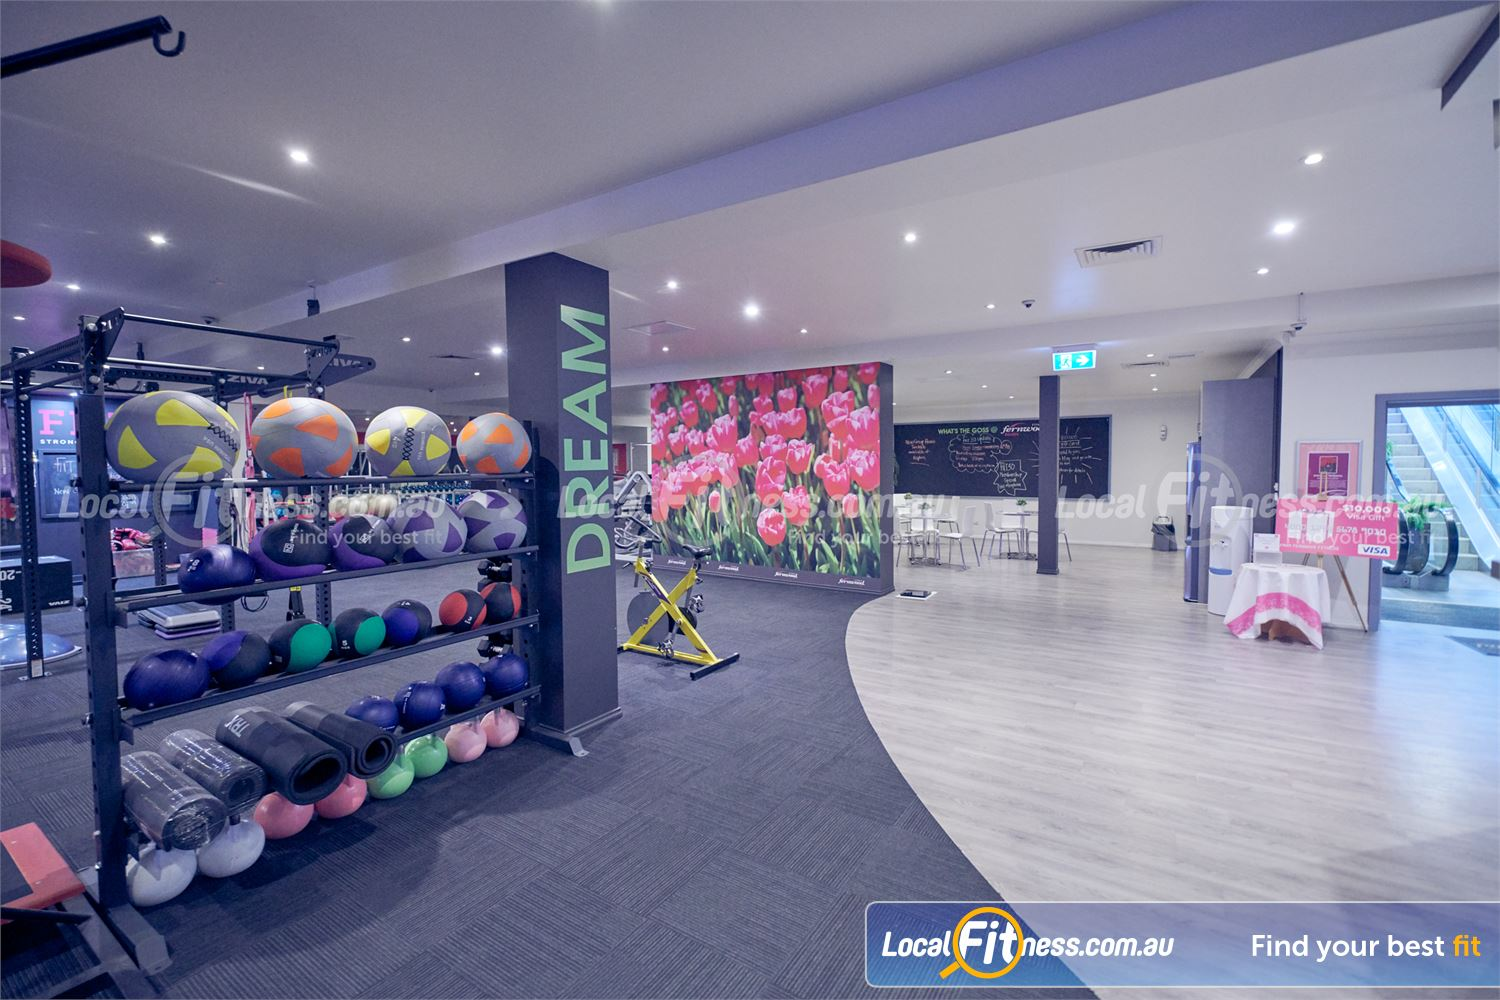 Fernwood Fitness Bulleen We open 24 hours so you can fit fitness around your schedule.